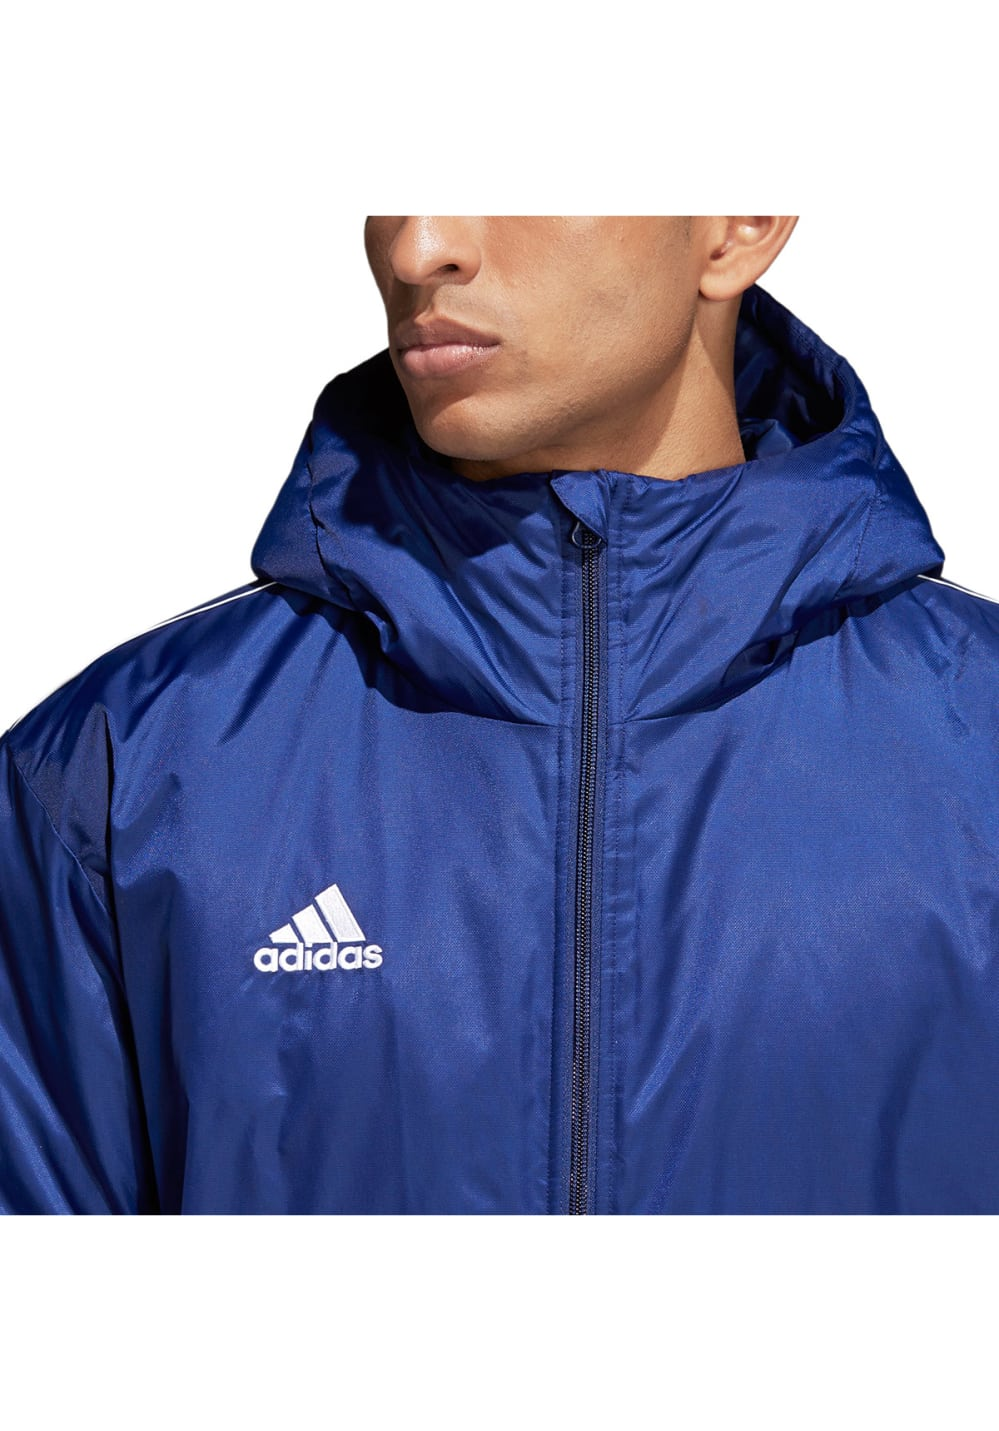 49a6b82f8 adidas Core 18 Stadium Jacke - Running jackets for Men - Blue